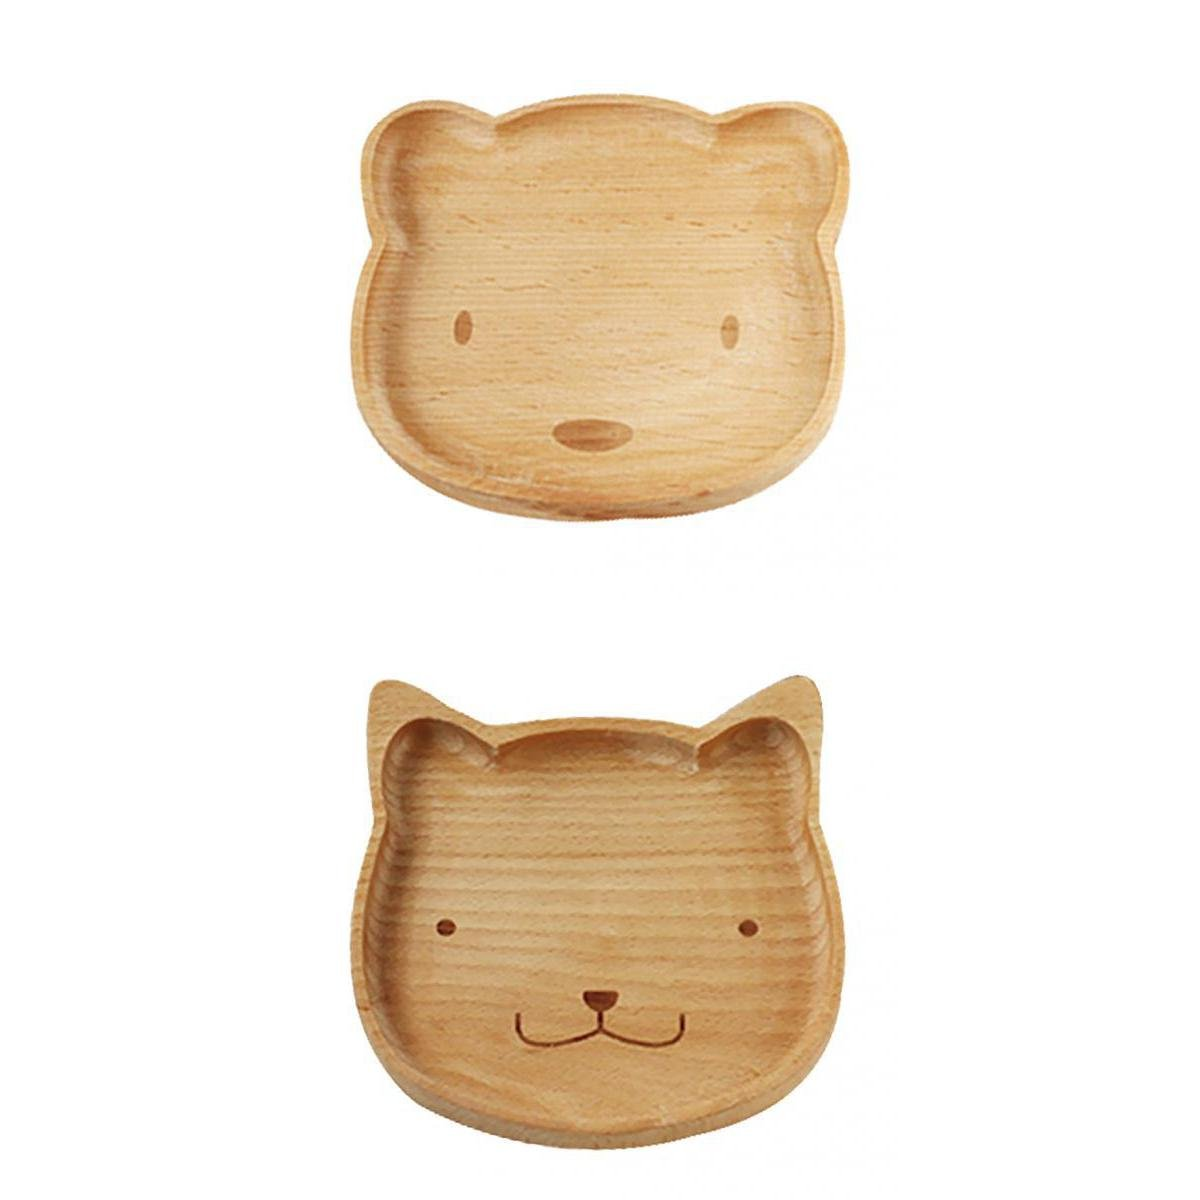 MonkeyJack Decorative Wooden Serving Tray Plate Set Bowl Sets of 2 Bear Cat Wood Plate